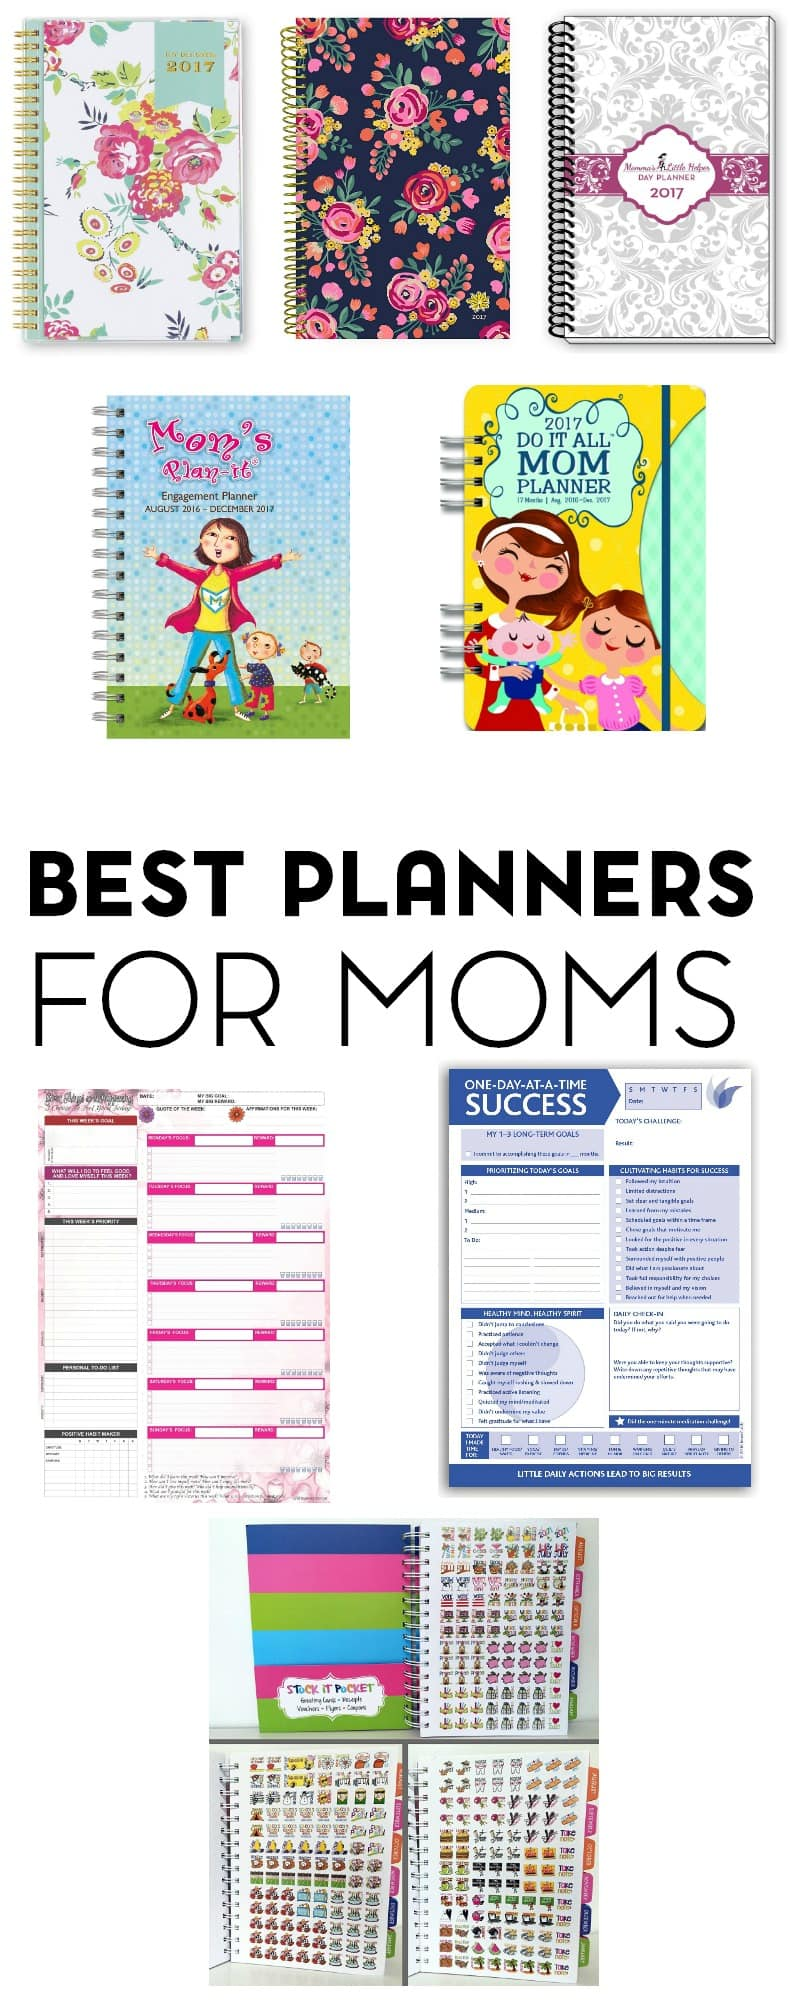 Top Picks for Planners for Moms Who Want to Get Organized 2